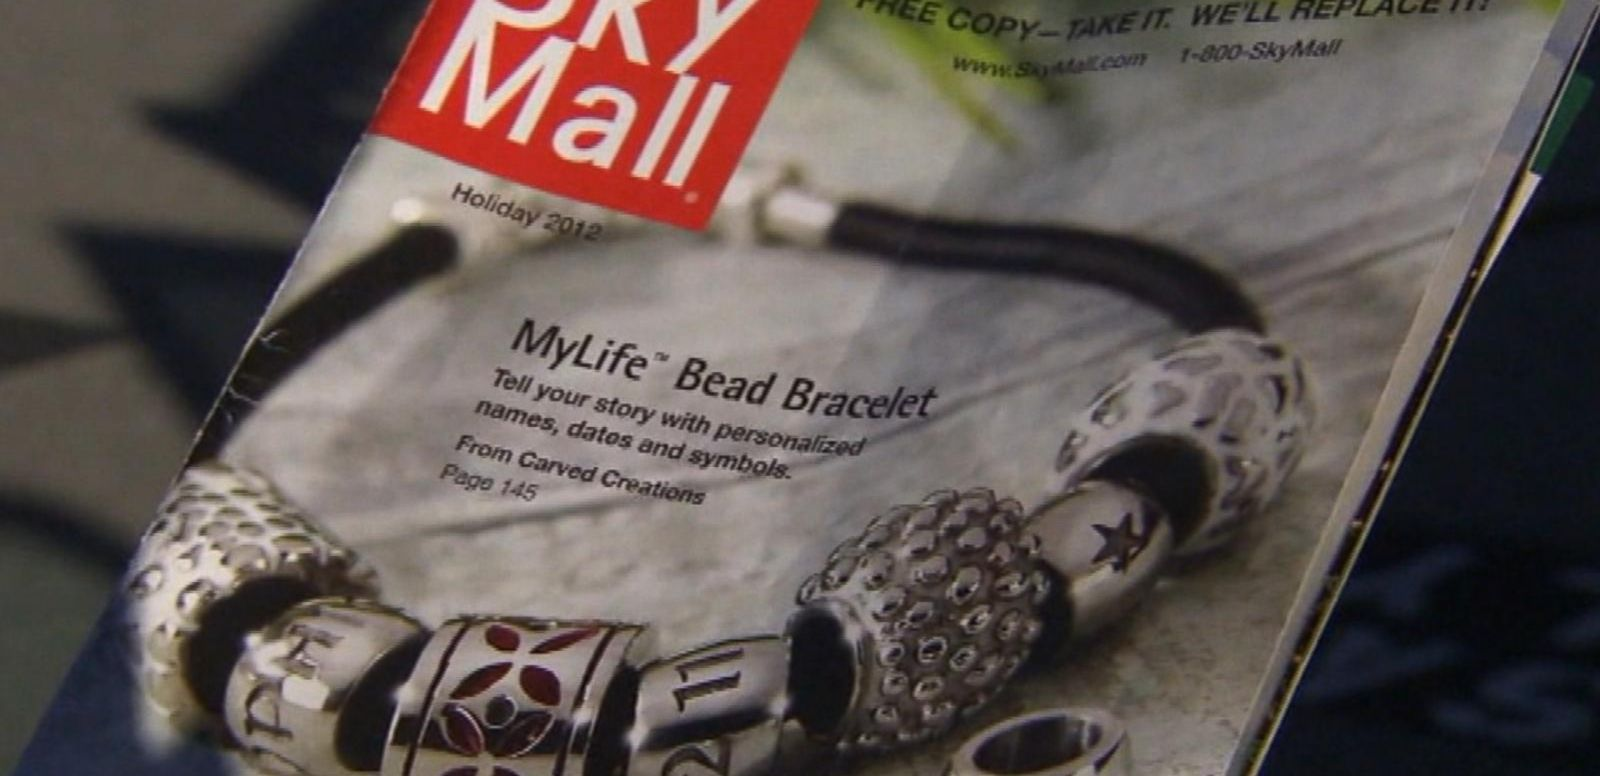 VIDEO: SkyMall's Craziest Products May Disappear After Company's Bankruptcy